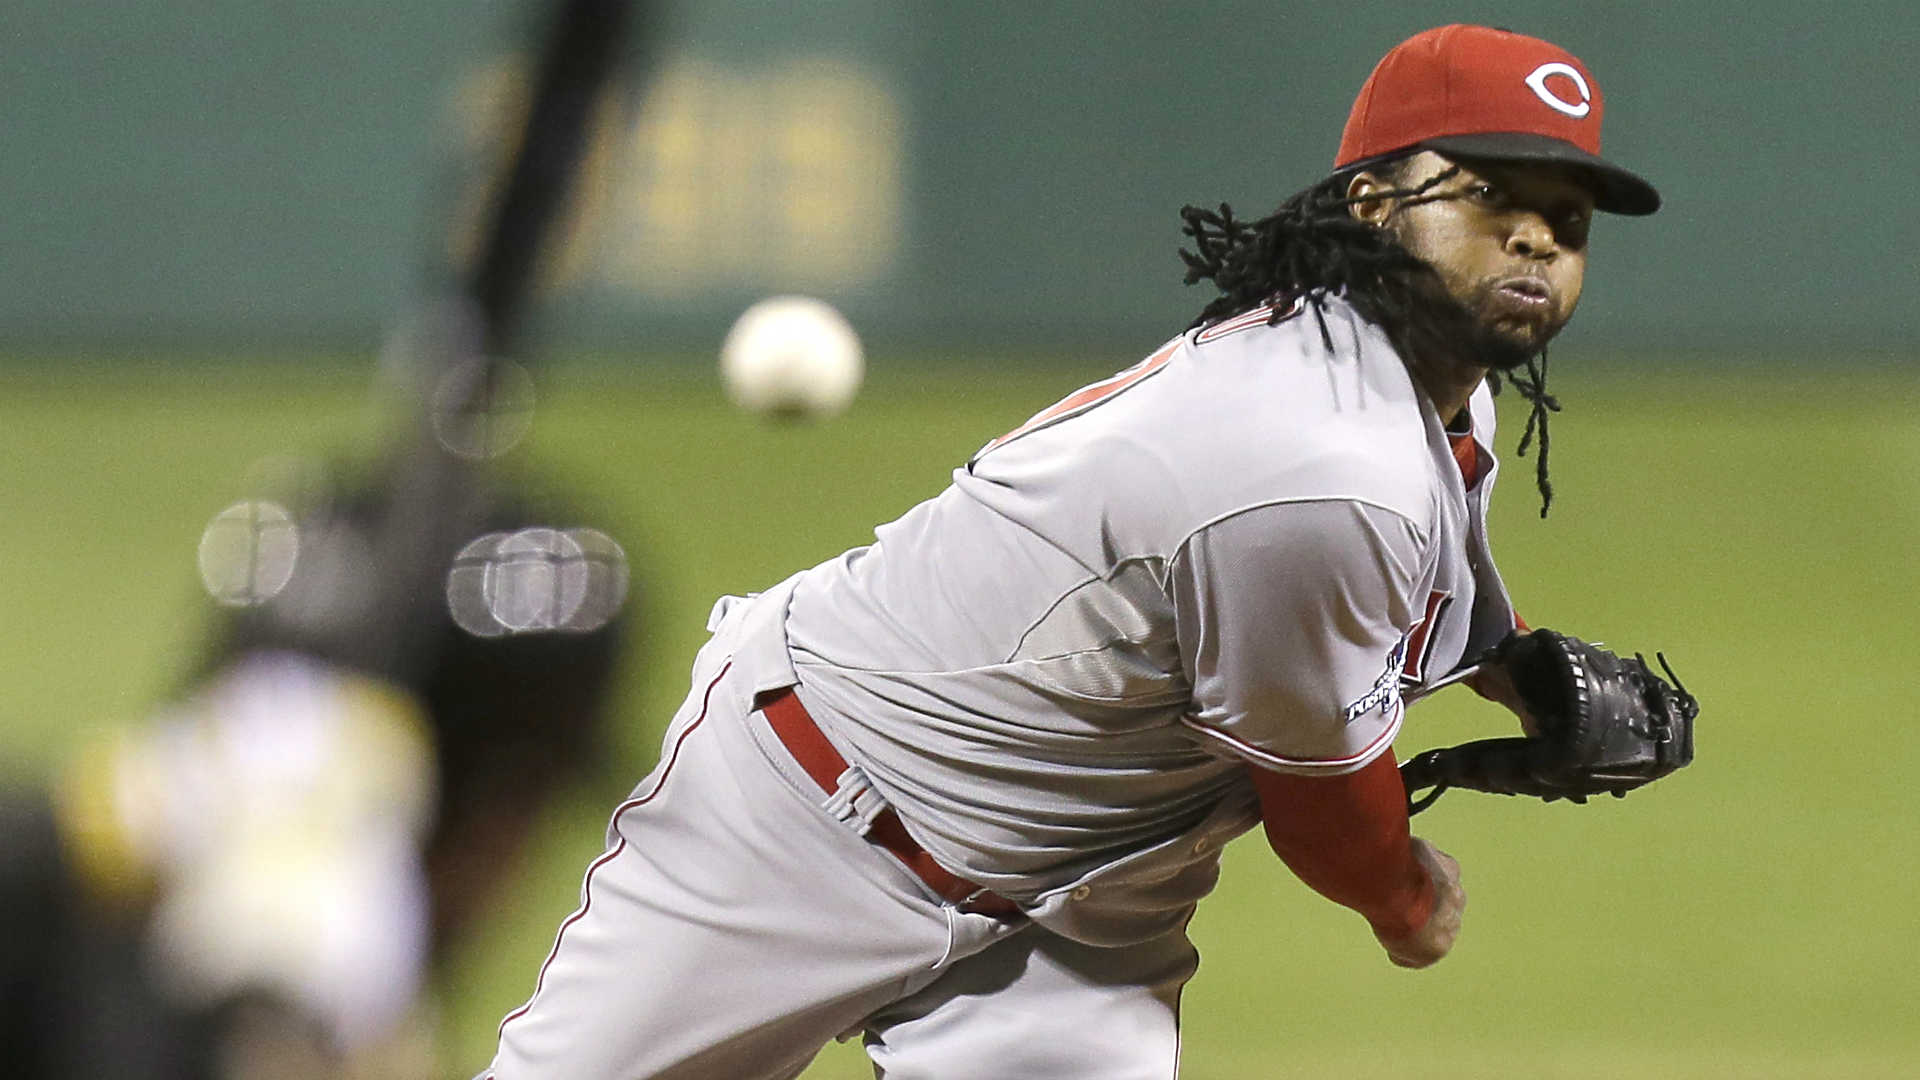 Johnny-Cueto-020614-AP-FTR